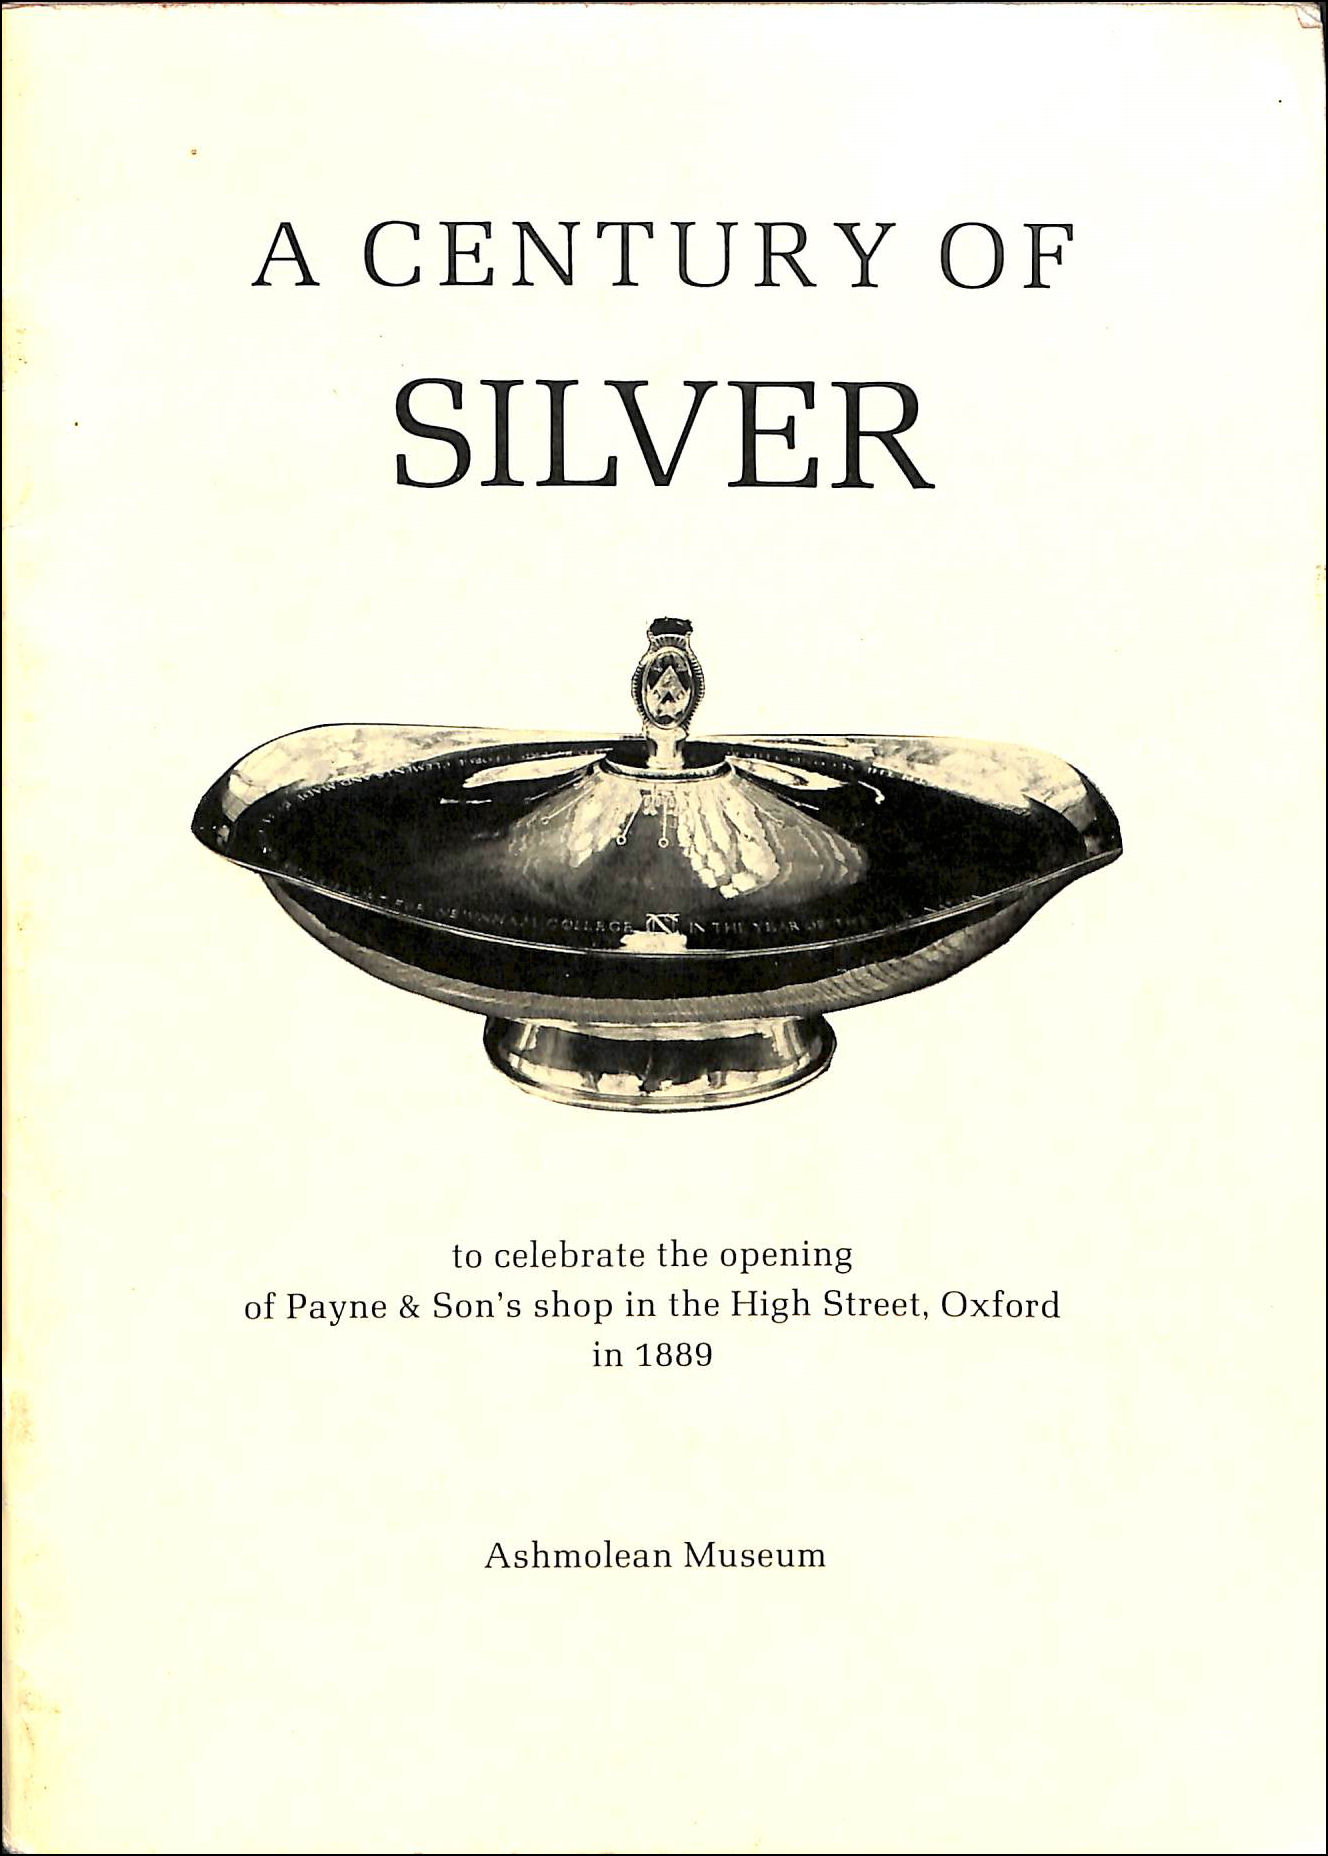 A Century of Silver, to Celebrate the opening of Payne & Son's Shop in the High Street, Oxford in 1889, Ashmolean Museum